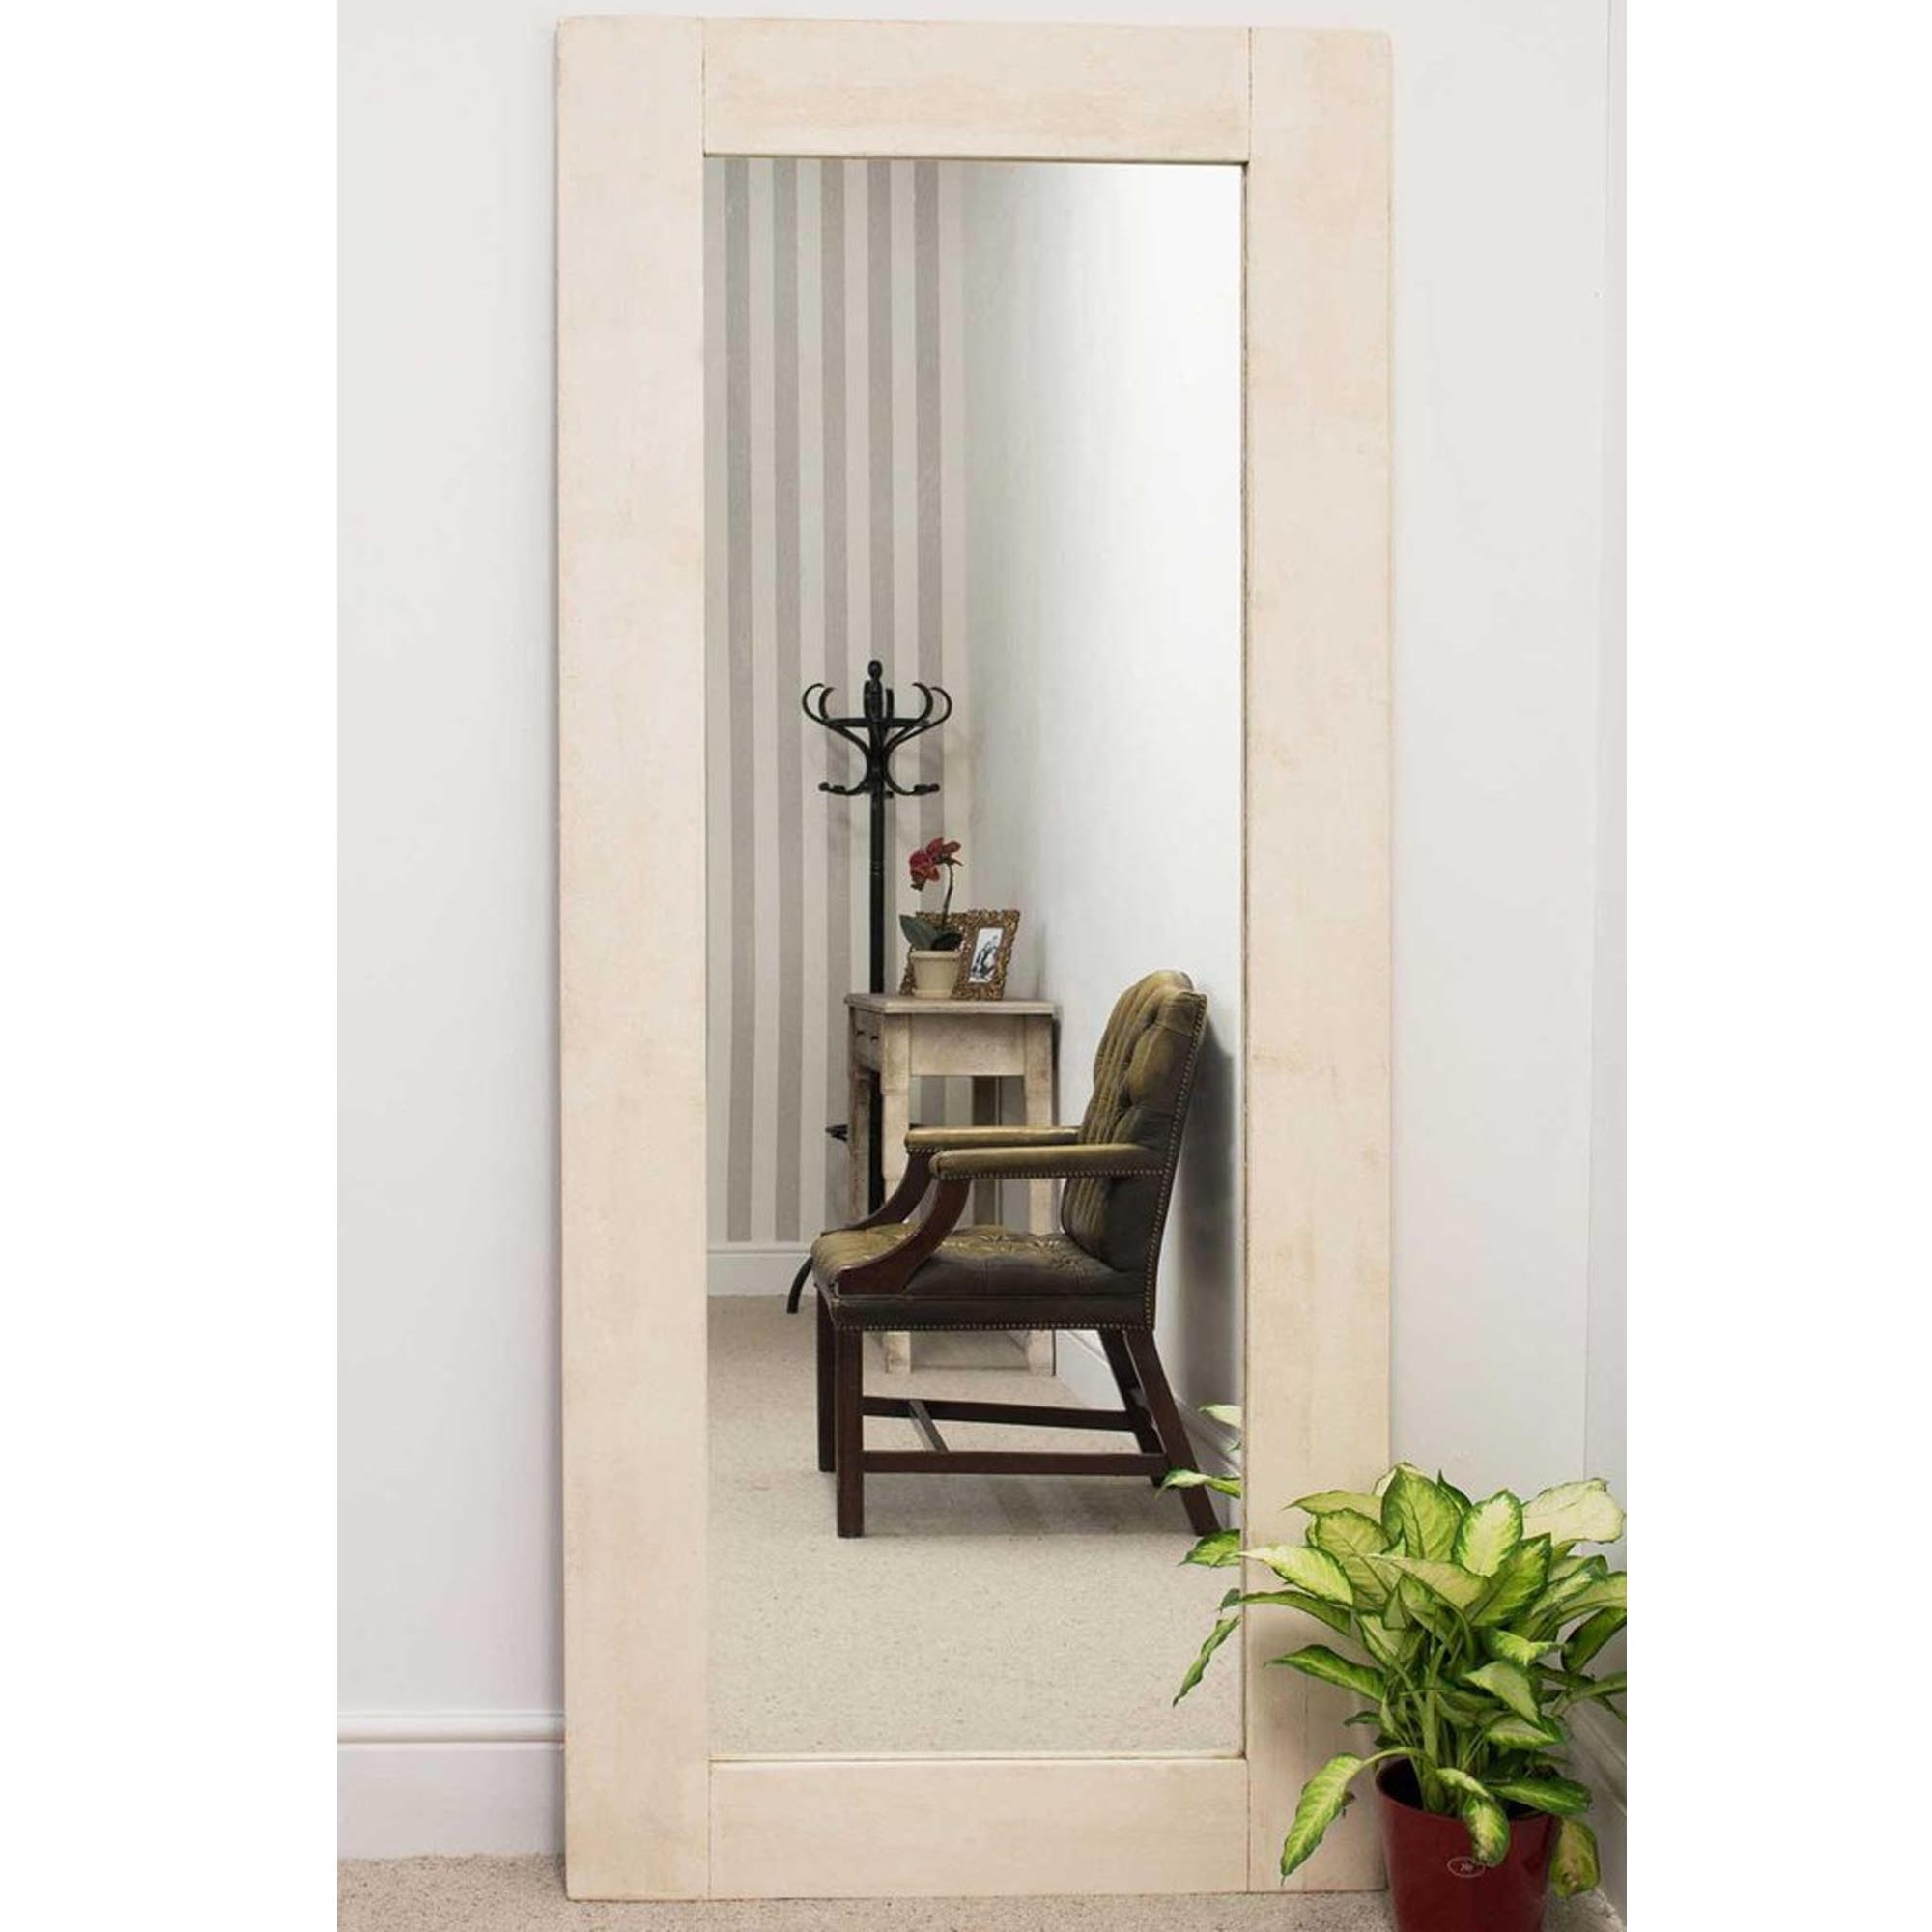 Tall Thin Rustic Country House White Wall Mirror Inside Well Known Thin Wall Mirrors (View 10 of 20)